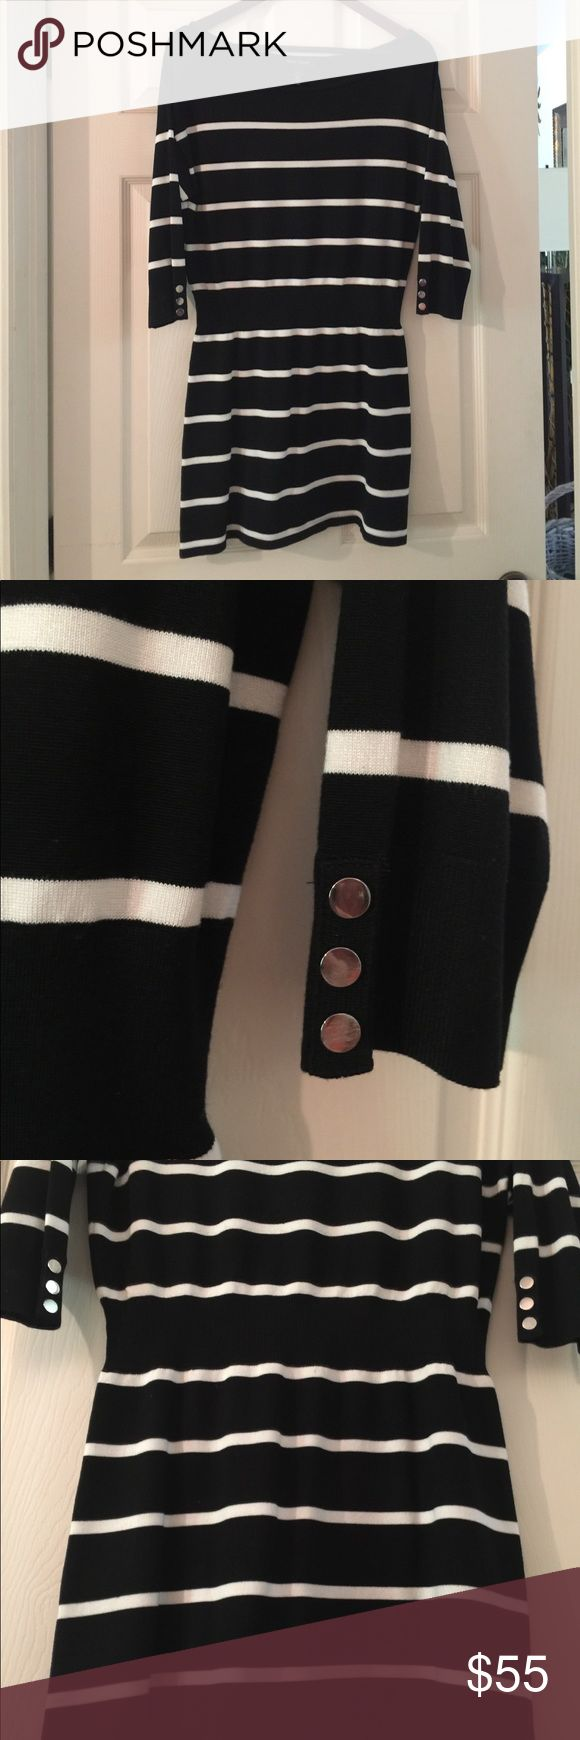 NWOT. White House Black Market Knit Shirt NWOT Black & White striped boat neck shirt that can also be worn dress-style with a pair of bootie shorts. Silver buttons accent the sleeves. Sport  your favorite pair of keds or strappy sandals and you're off! White House Black Market Tops